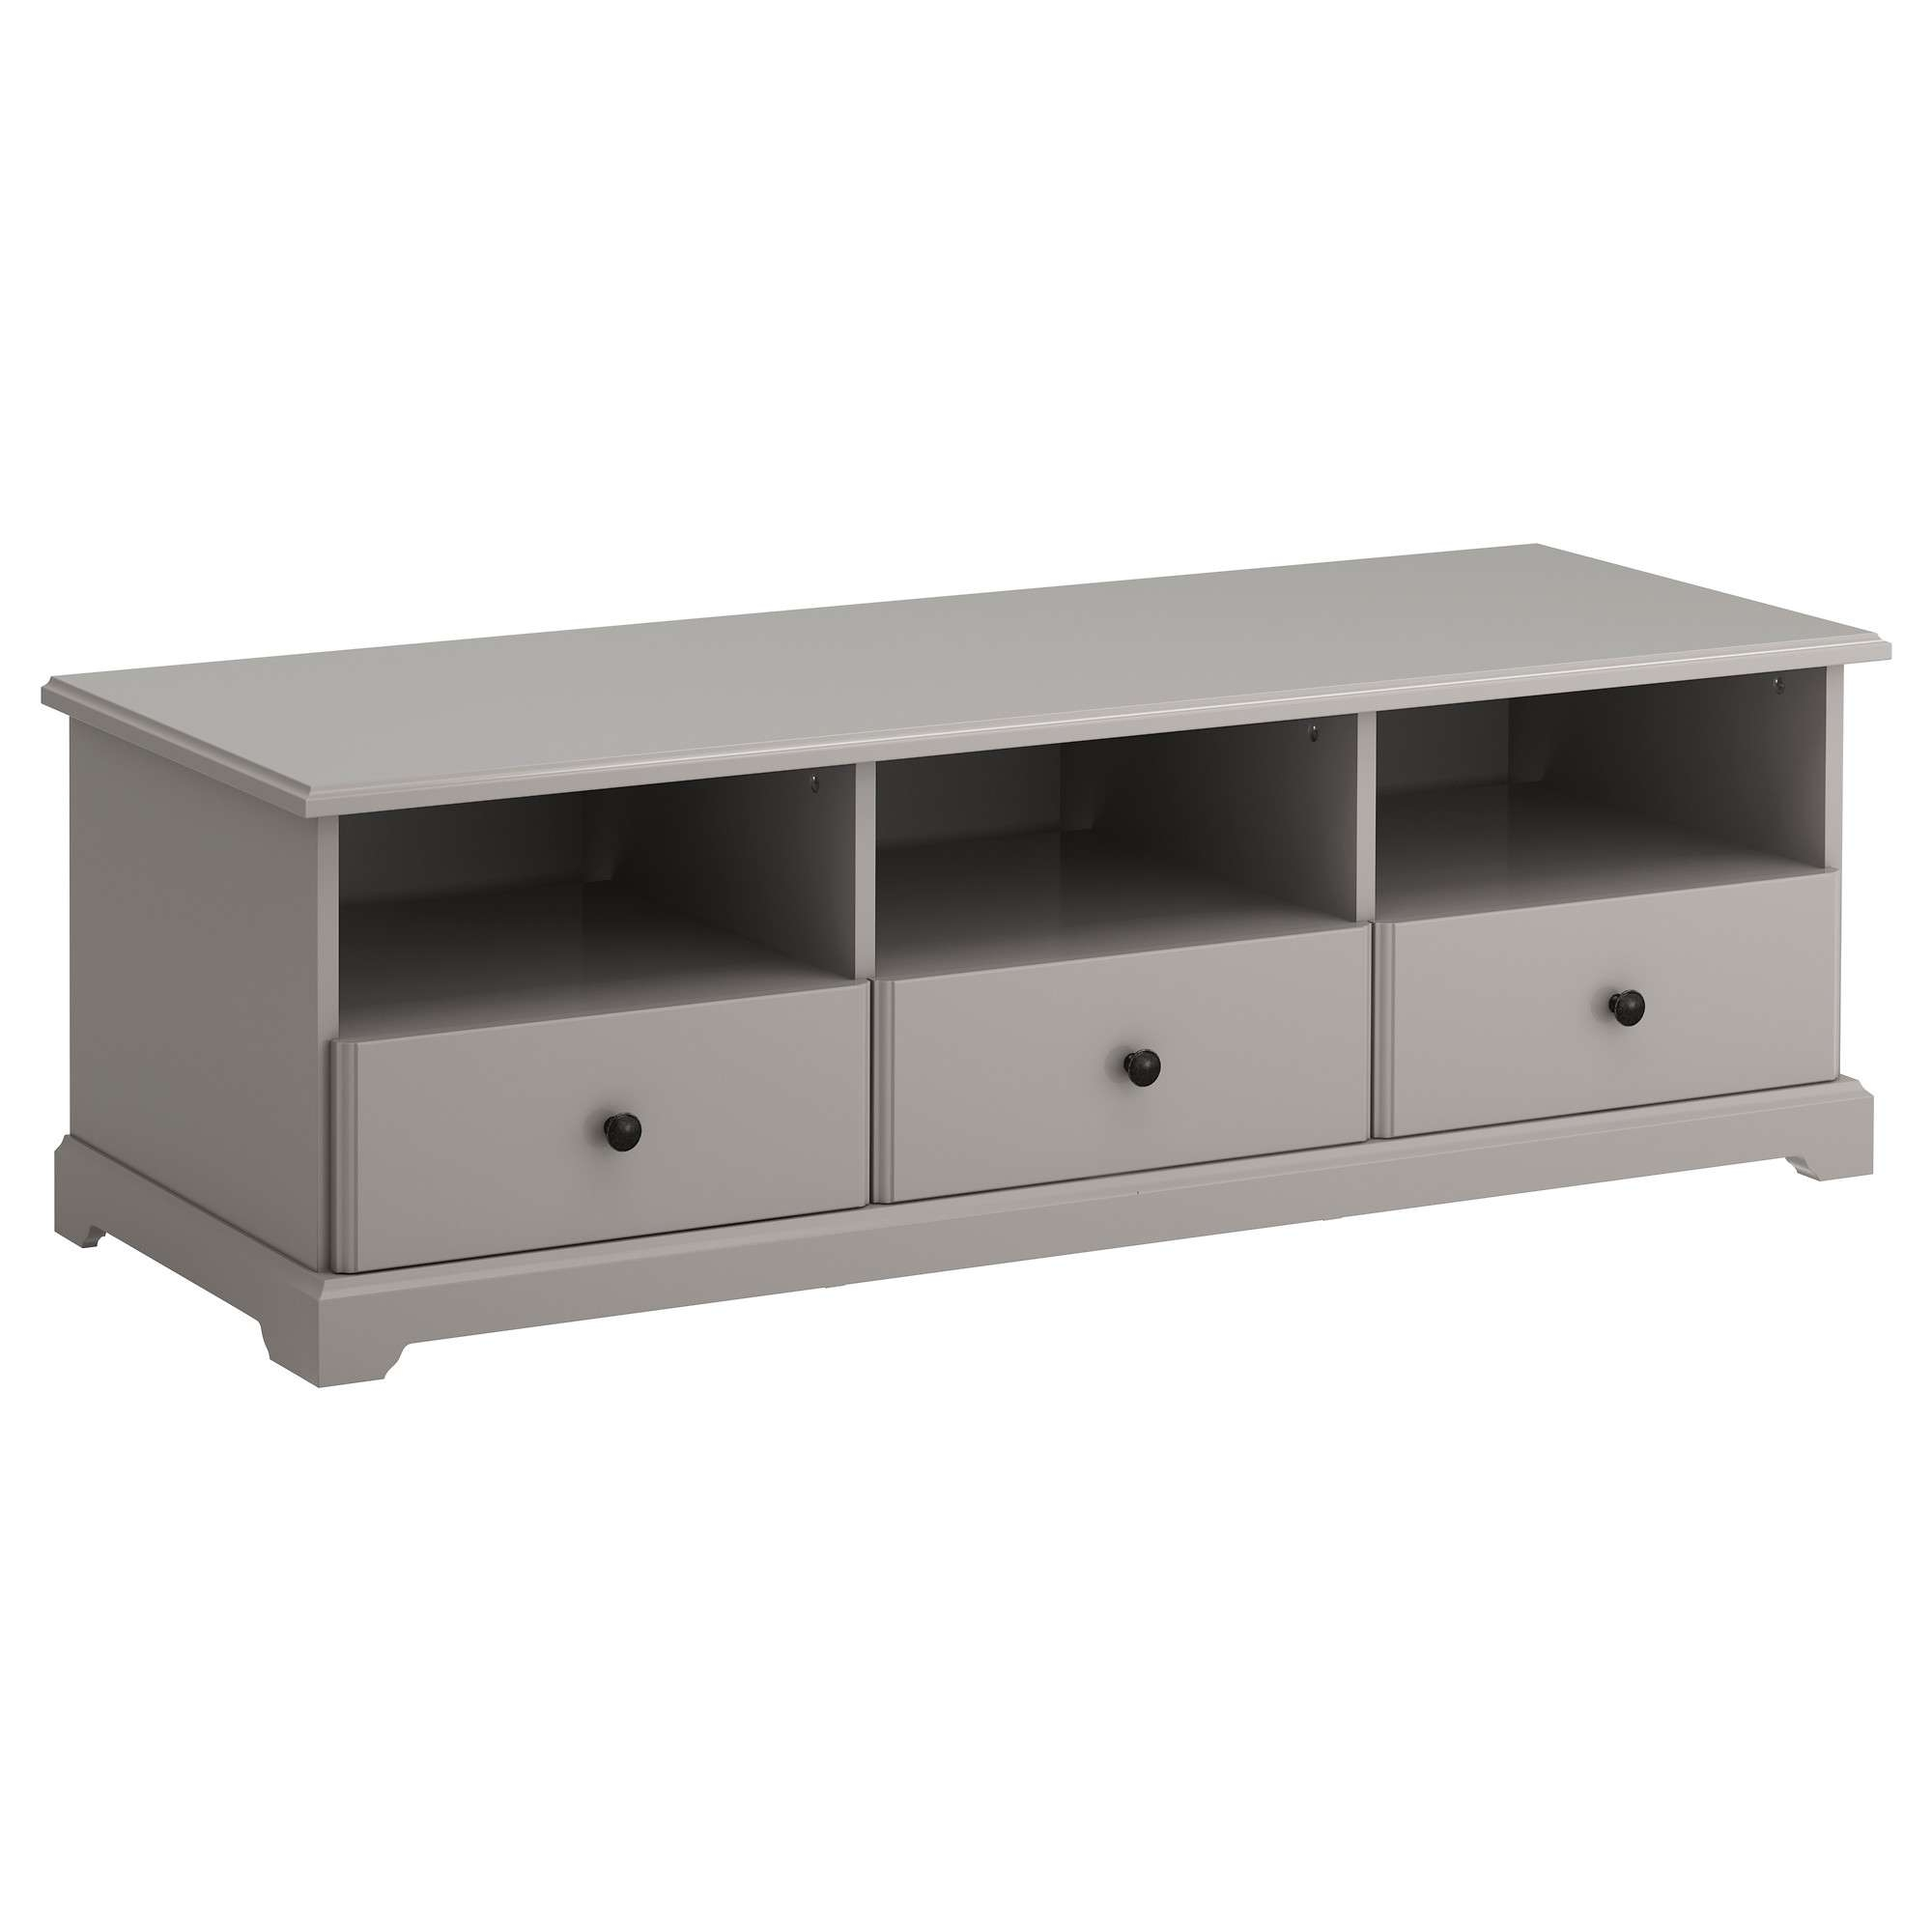 Liatorp Tv Bench – Gray – Ikea Intended For Bench Tv Stands (View 10 of 15)